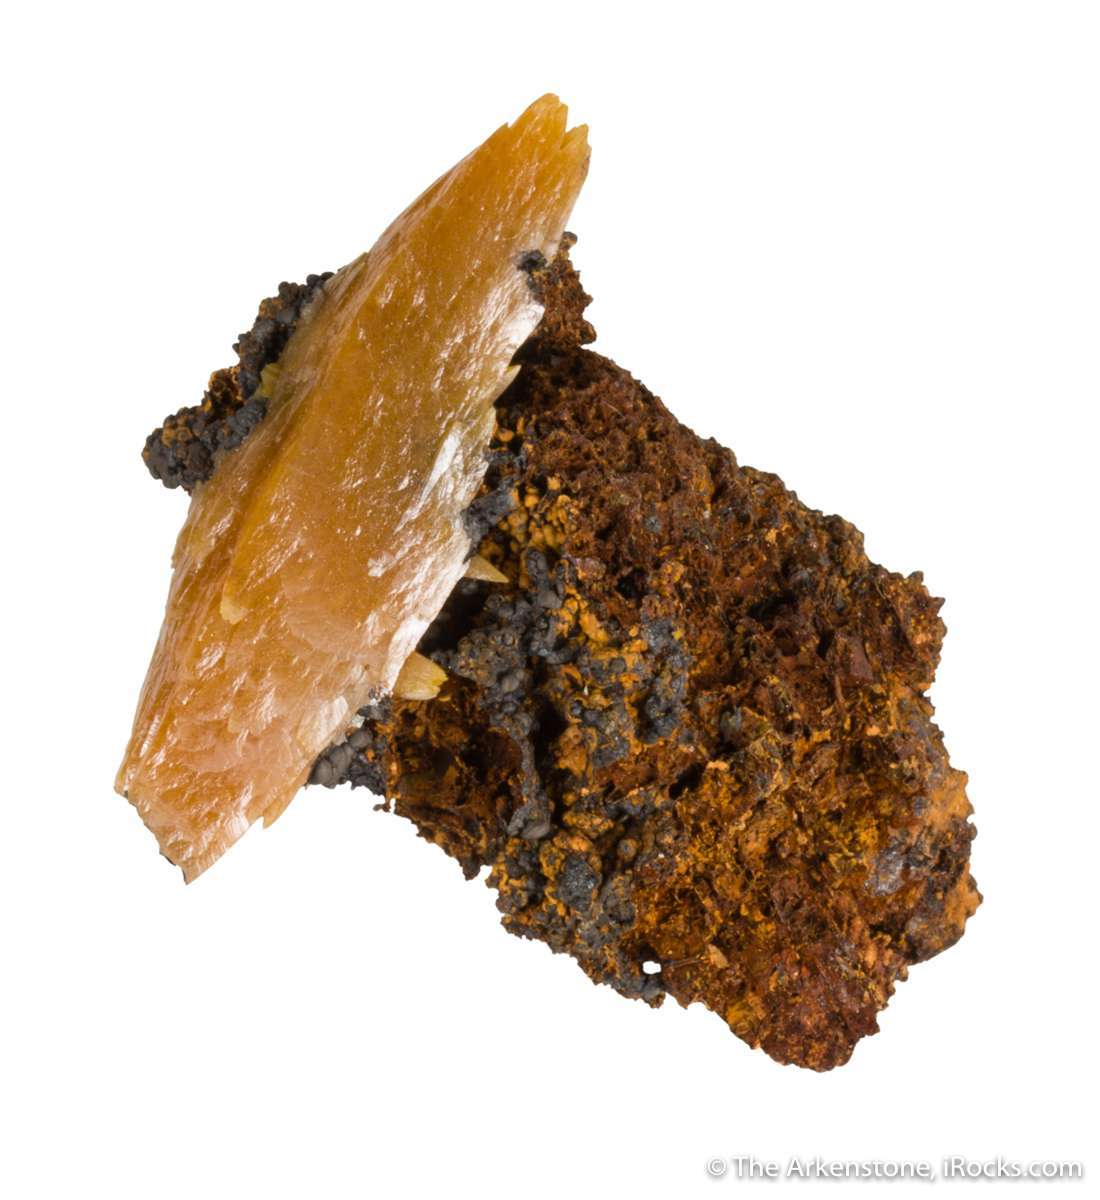 Bipyramidal wulfenite extremely rare nature This surprising specimen